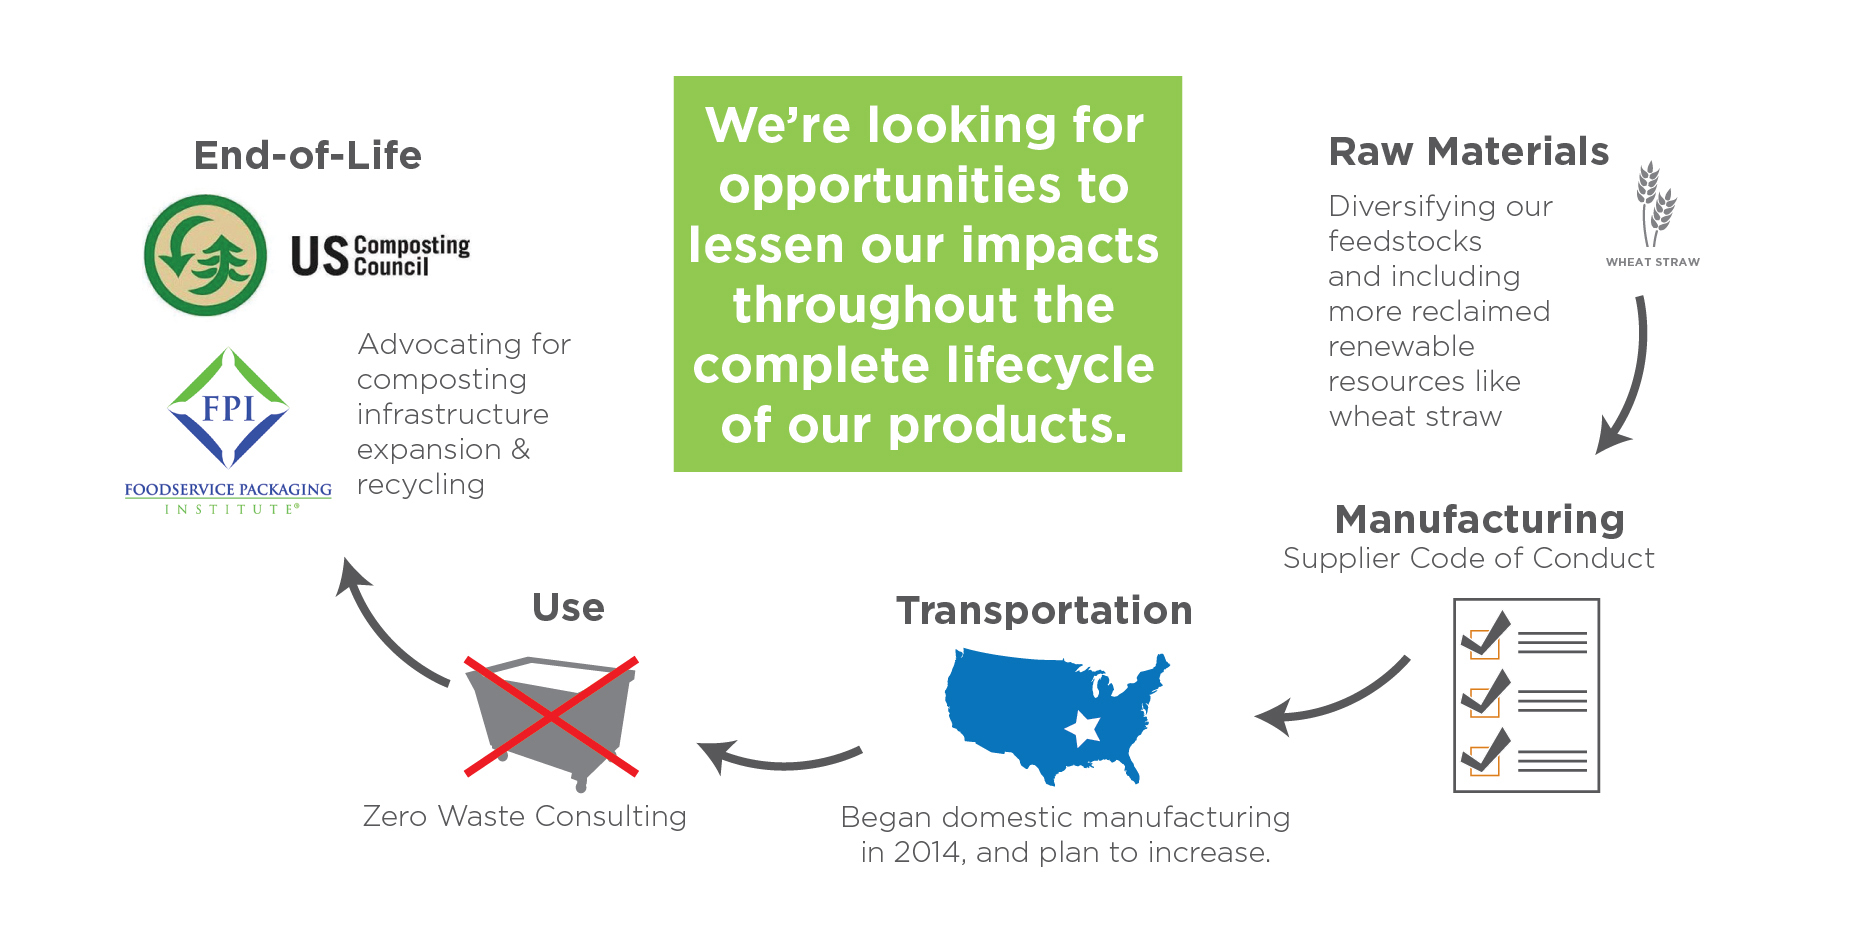 Product Design Opportunities throughout their Lifecycle